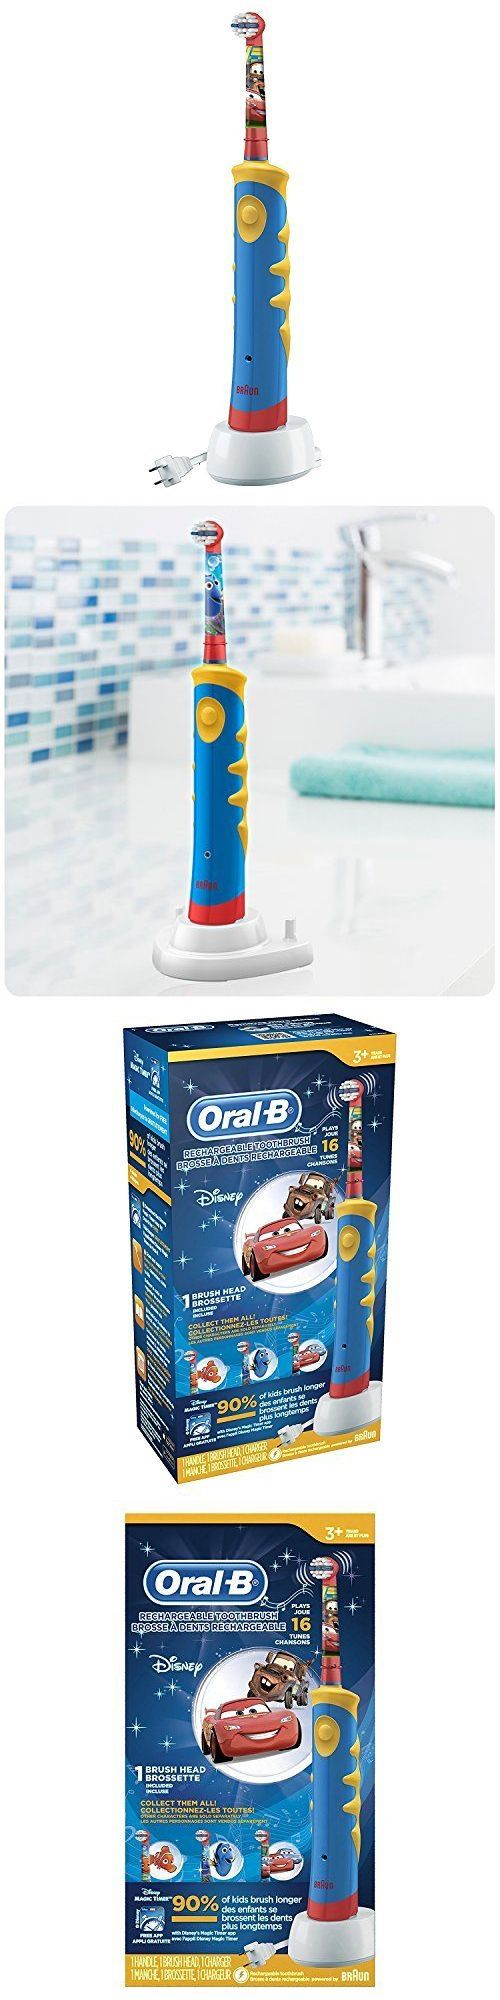 Childrens Oral Care: Oral B Pro-Health Stages Oral-B Power Brush - Finding Dory Toothbrush For Kids -> BUY IT NOW ONLY: $50.2 on eBay!